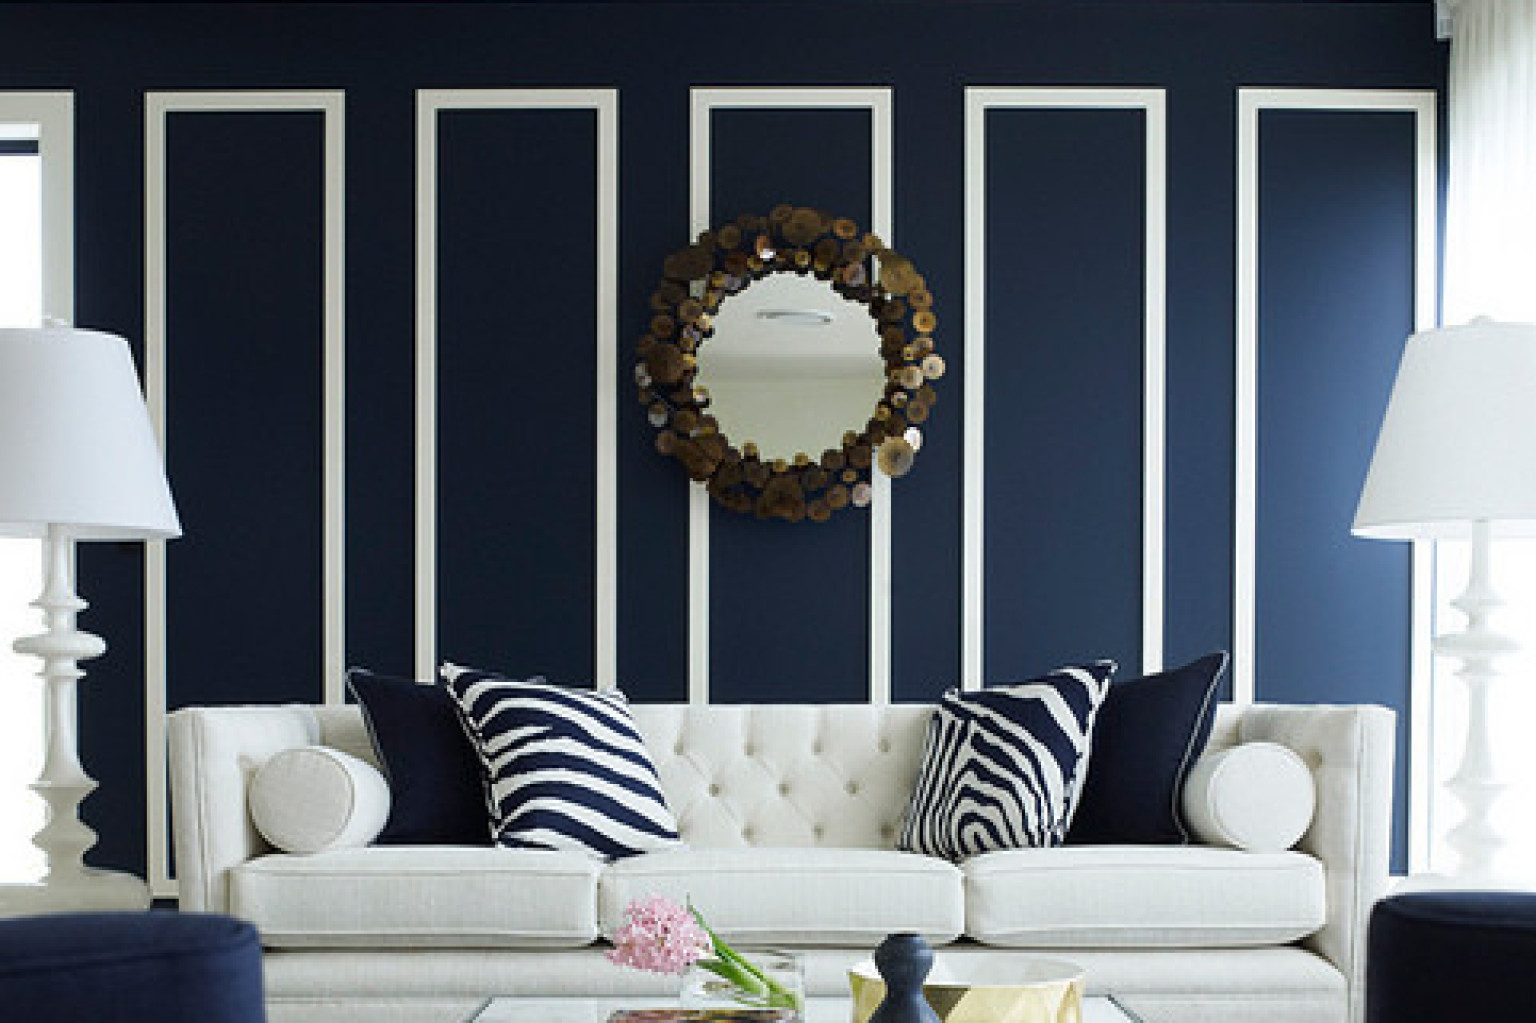 Fulgurant Navy Blue Navy Rooms To Inspire You To Pick Up Paintbrush Huffpost Navy Rooms To Inspire You To Pick Up Paintbrush Colors That Go Colors That Go Red Navy Blue houzz-02 Colors That Go With Navy Blue